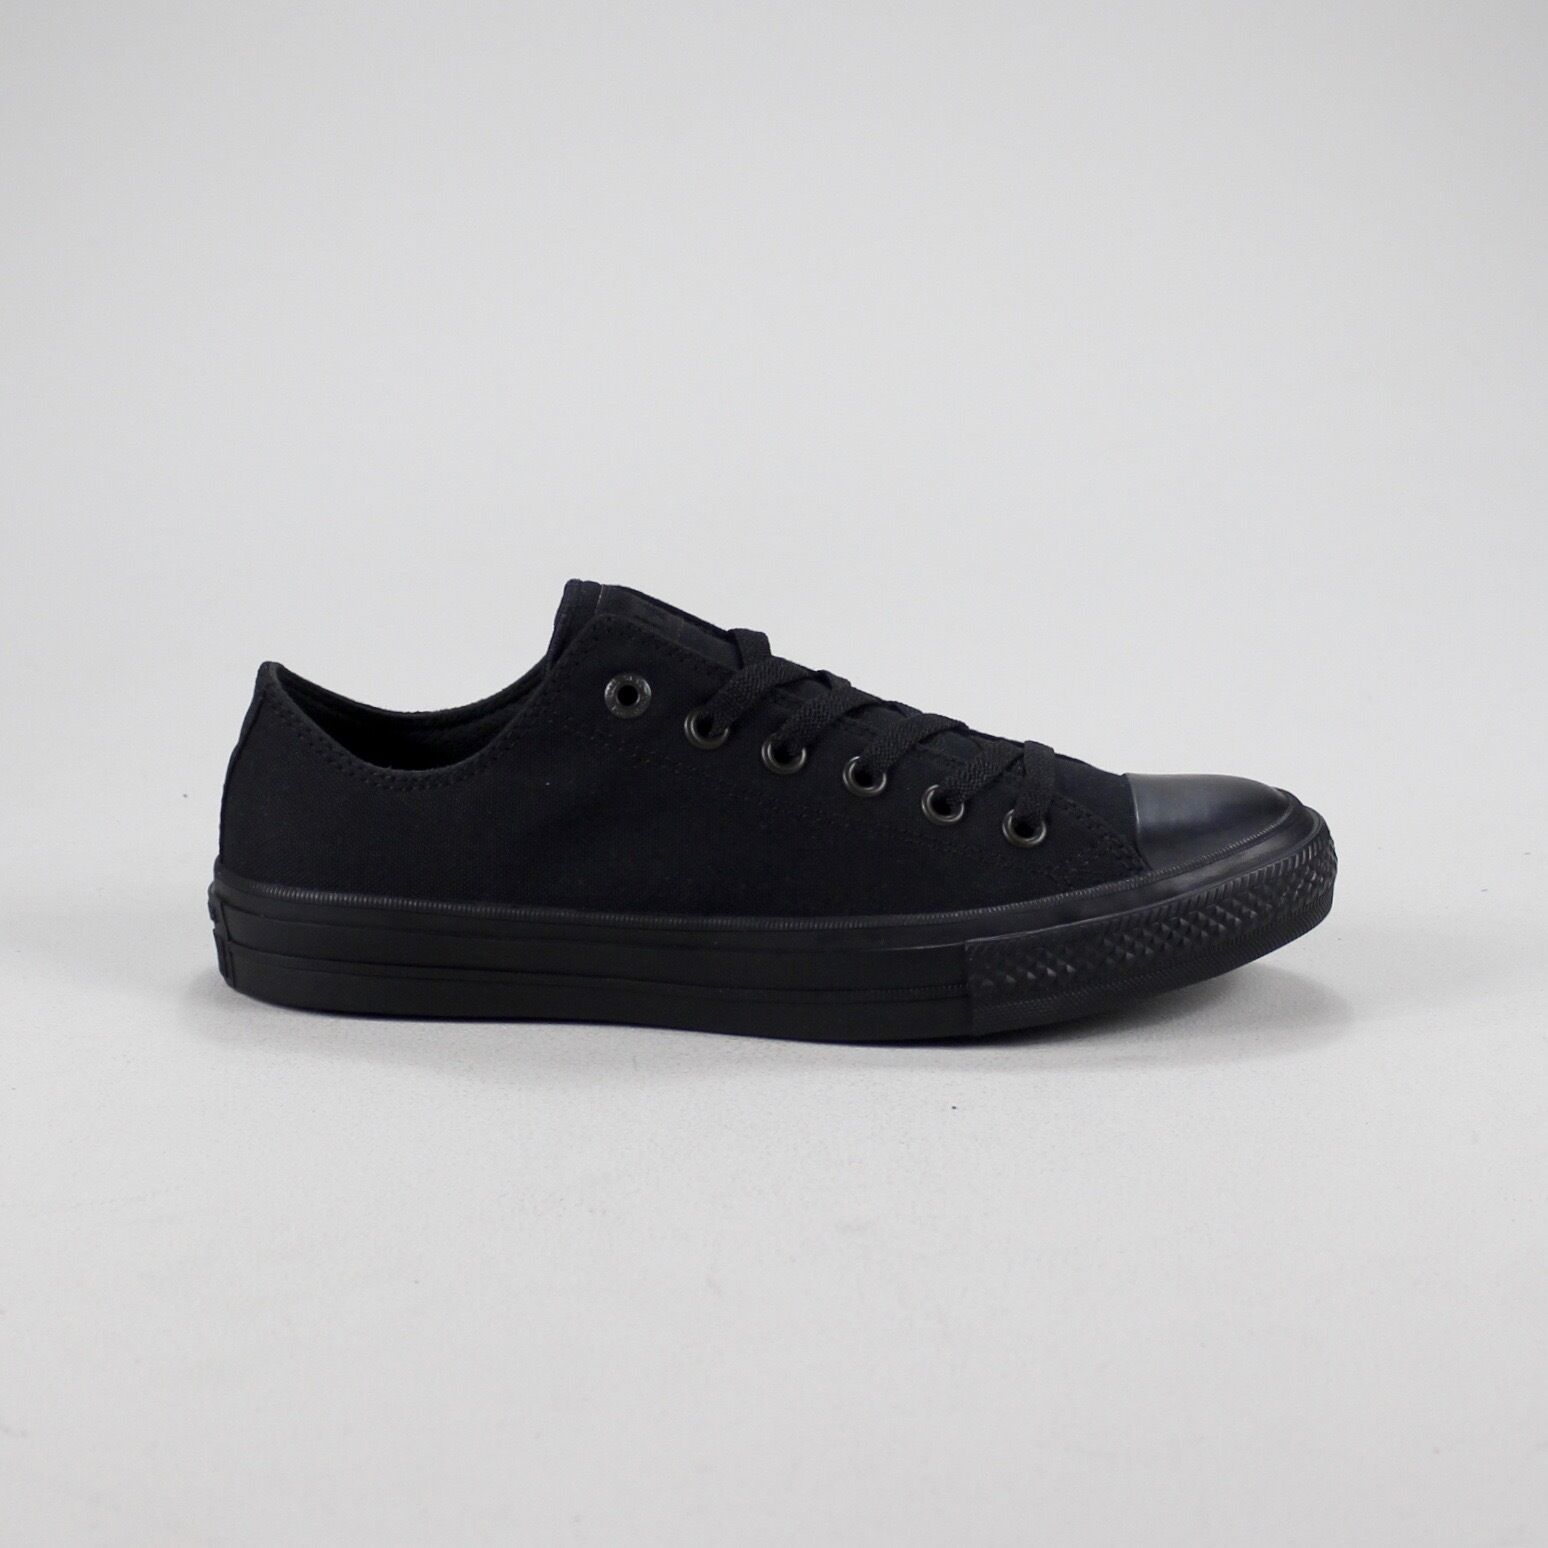 49b82e71e7b Details about Converse All Star Ox II Low Trainers New in box Size UK size  4,5,6,7,8